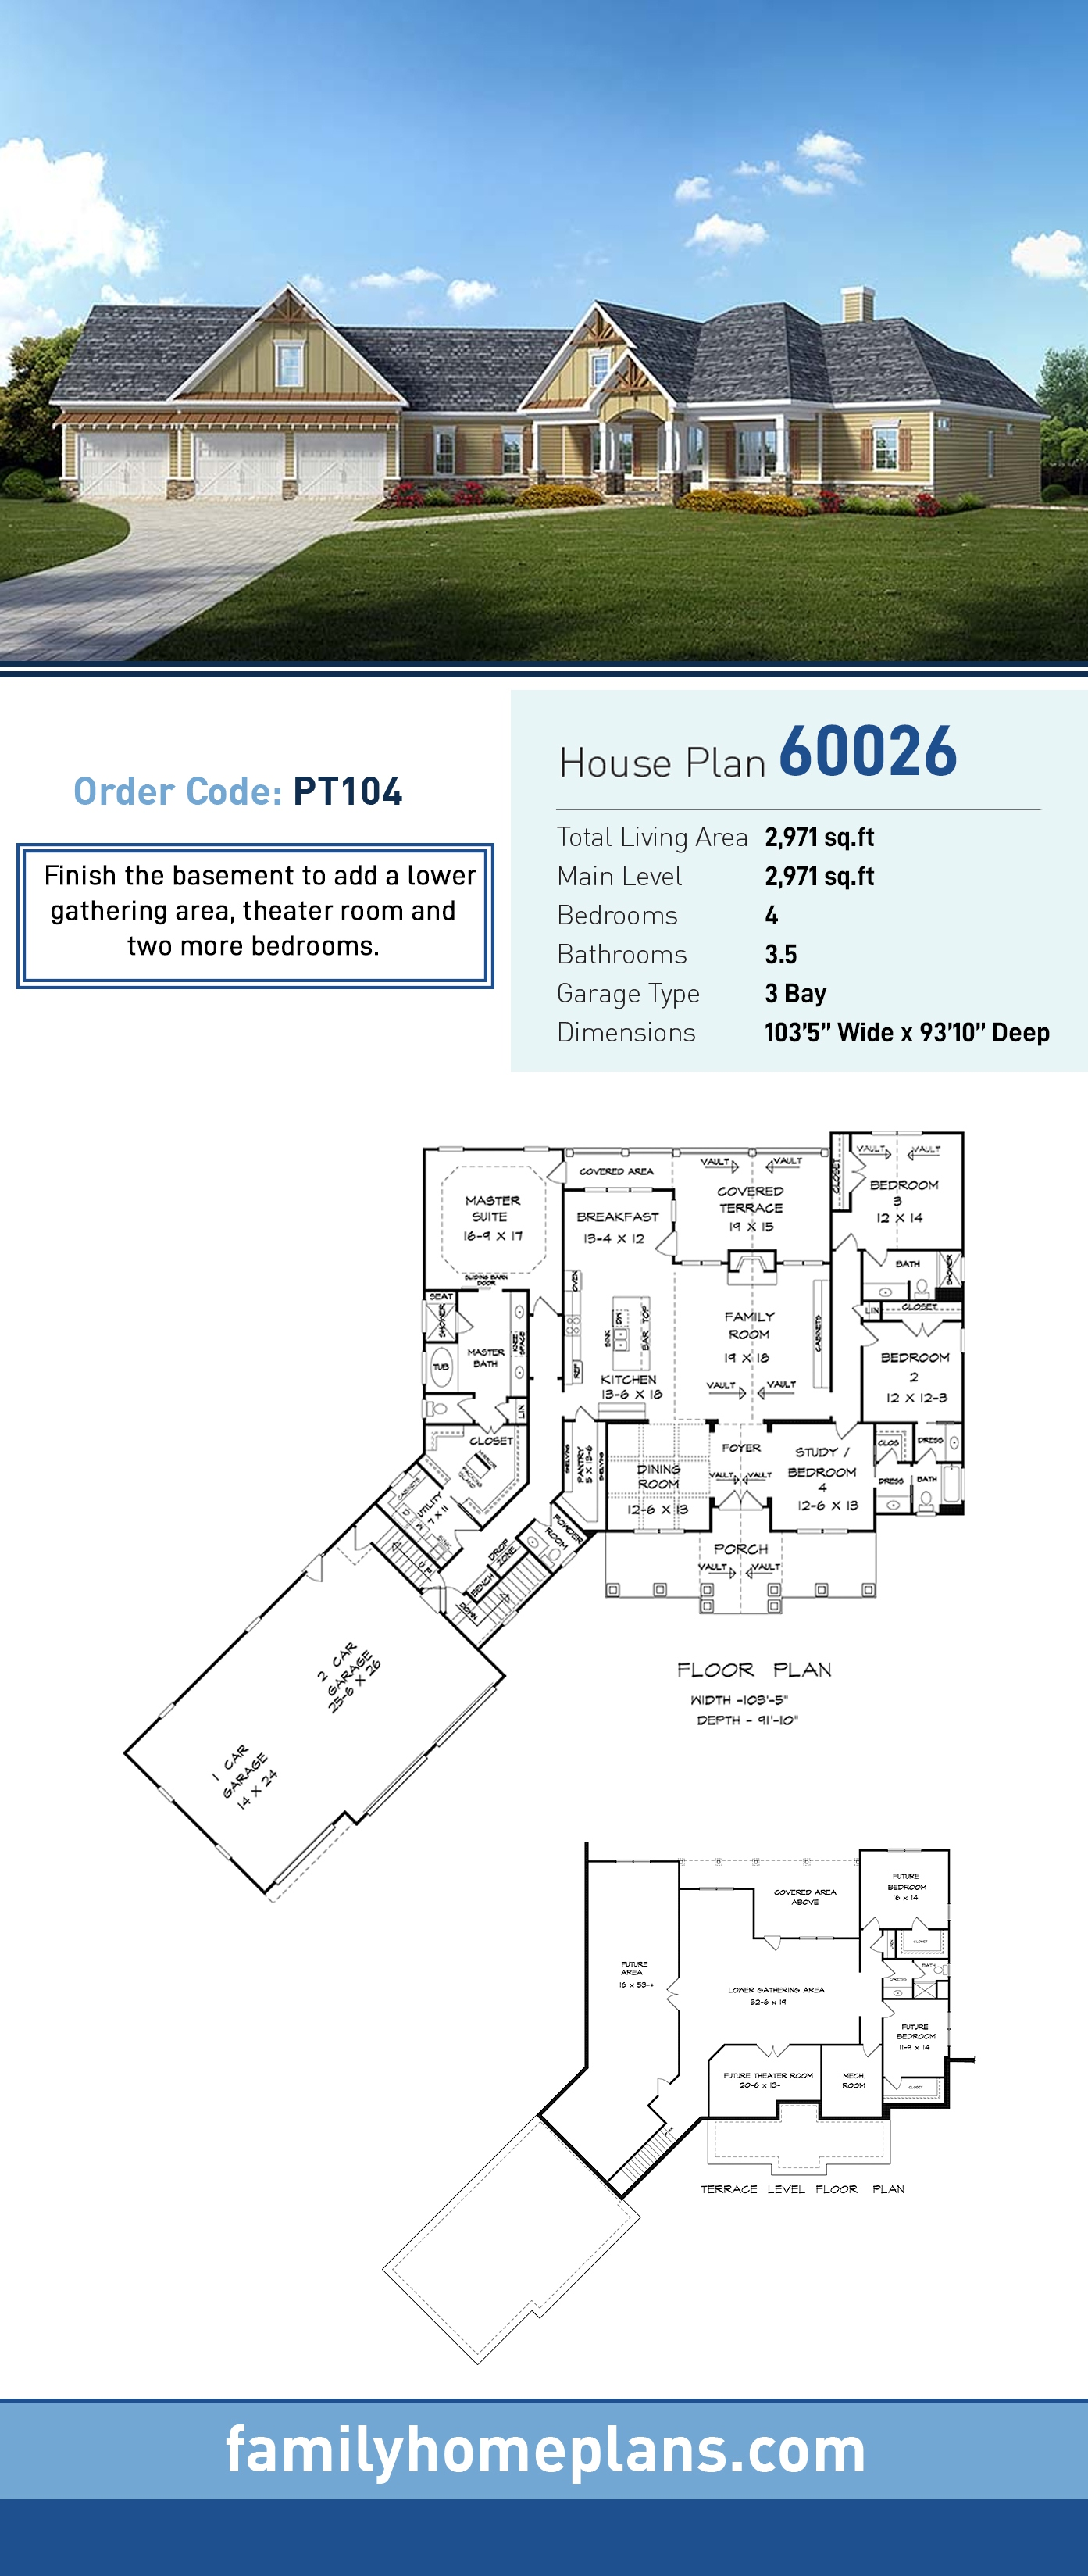 Craftsman, Traditional House Plan 60026 with 4 Beds, 4 Baths, 3 Car Garage